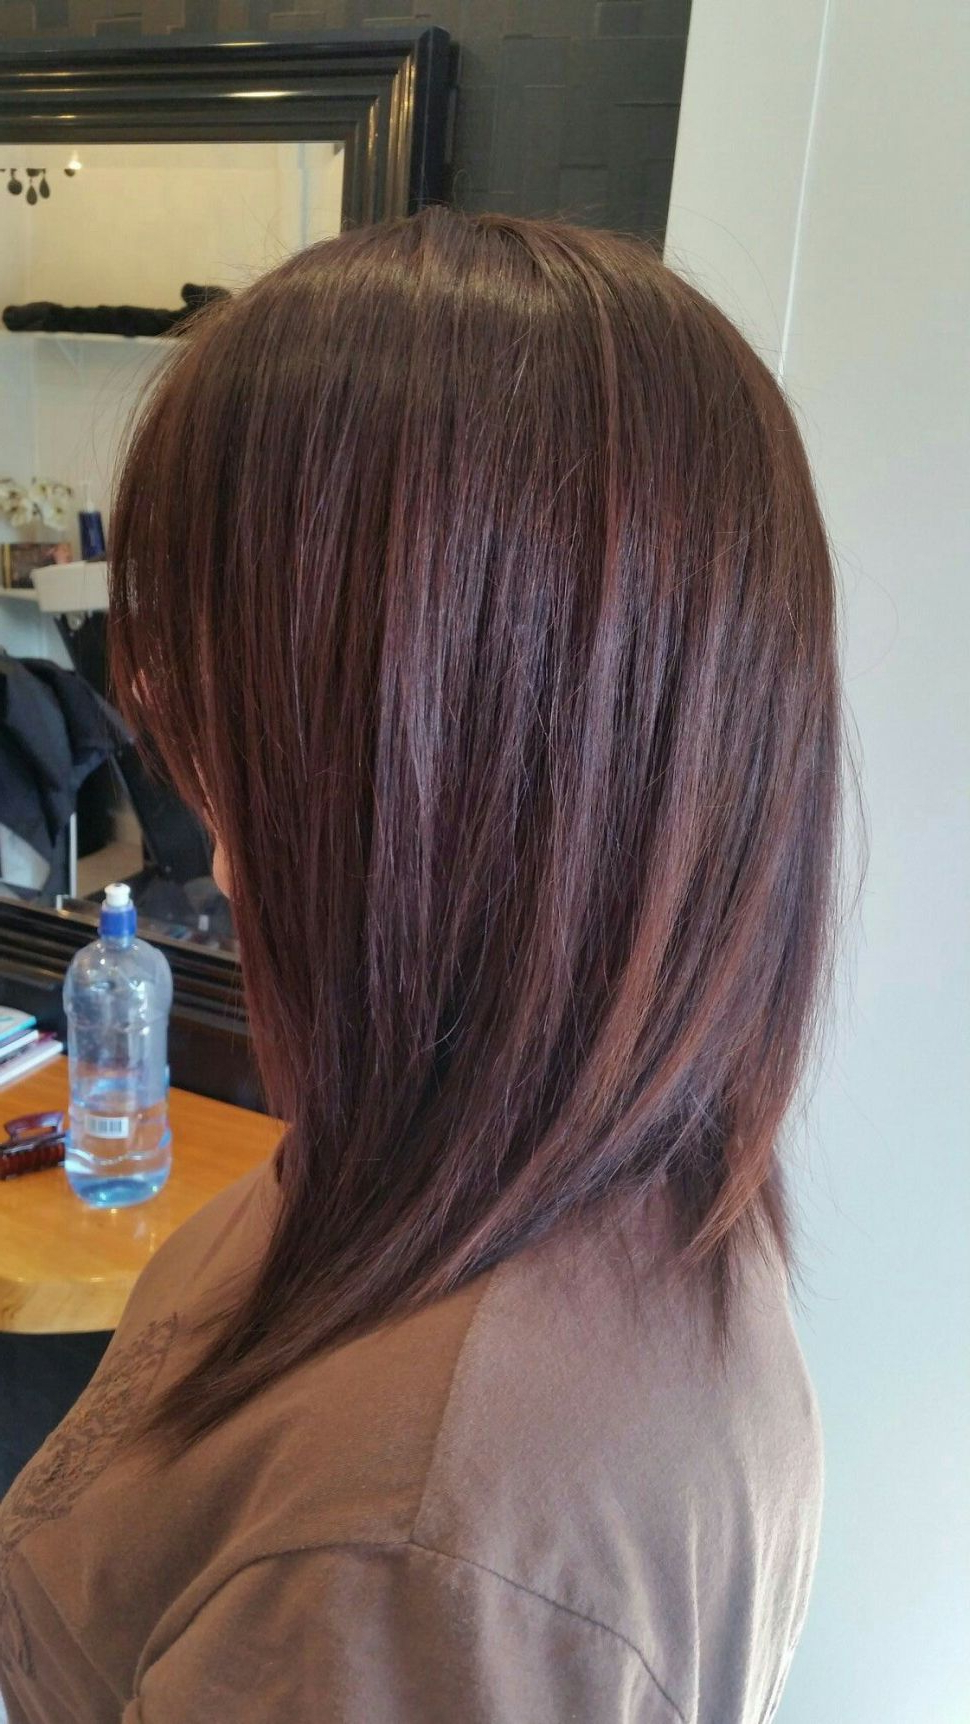 Hairstyles : Aline Textured Long Bob Hair Pinterest Styles With A Line Haircuts For A Round Face (View 15 of 20)